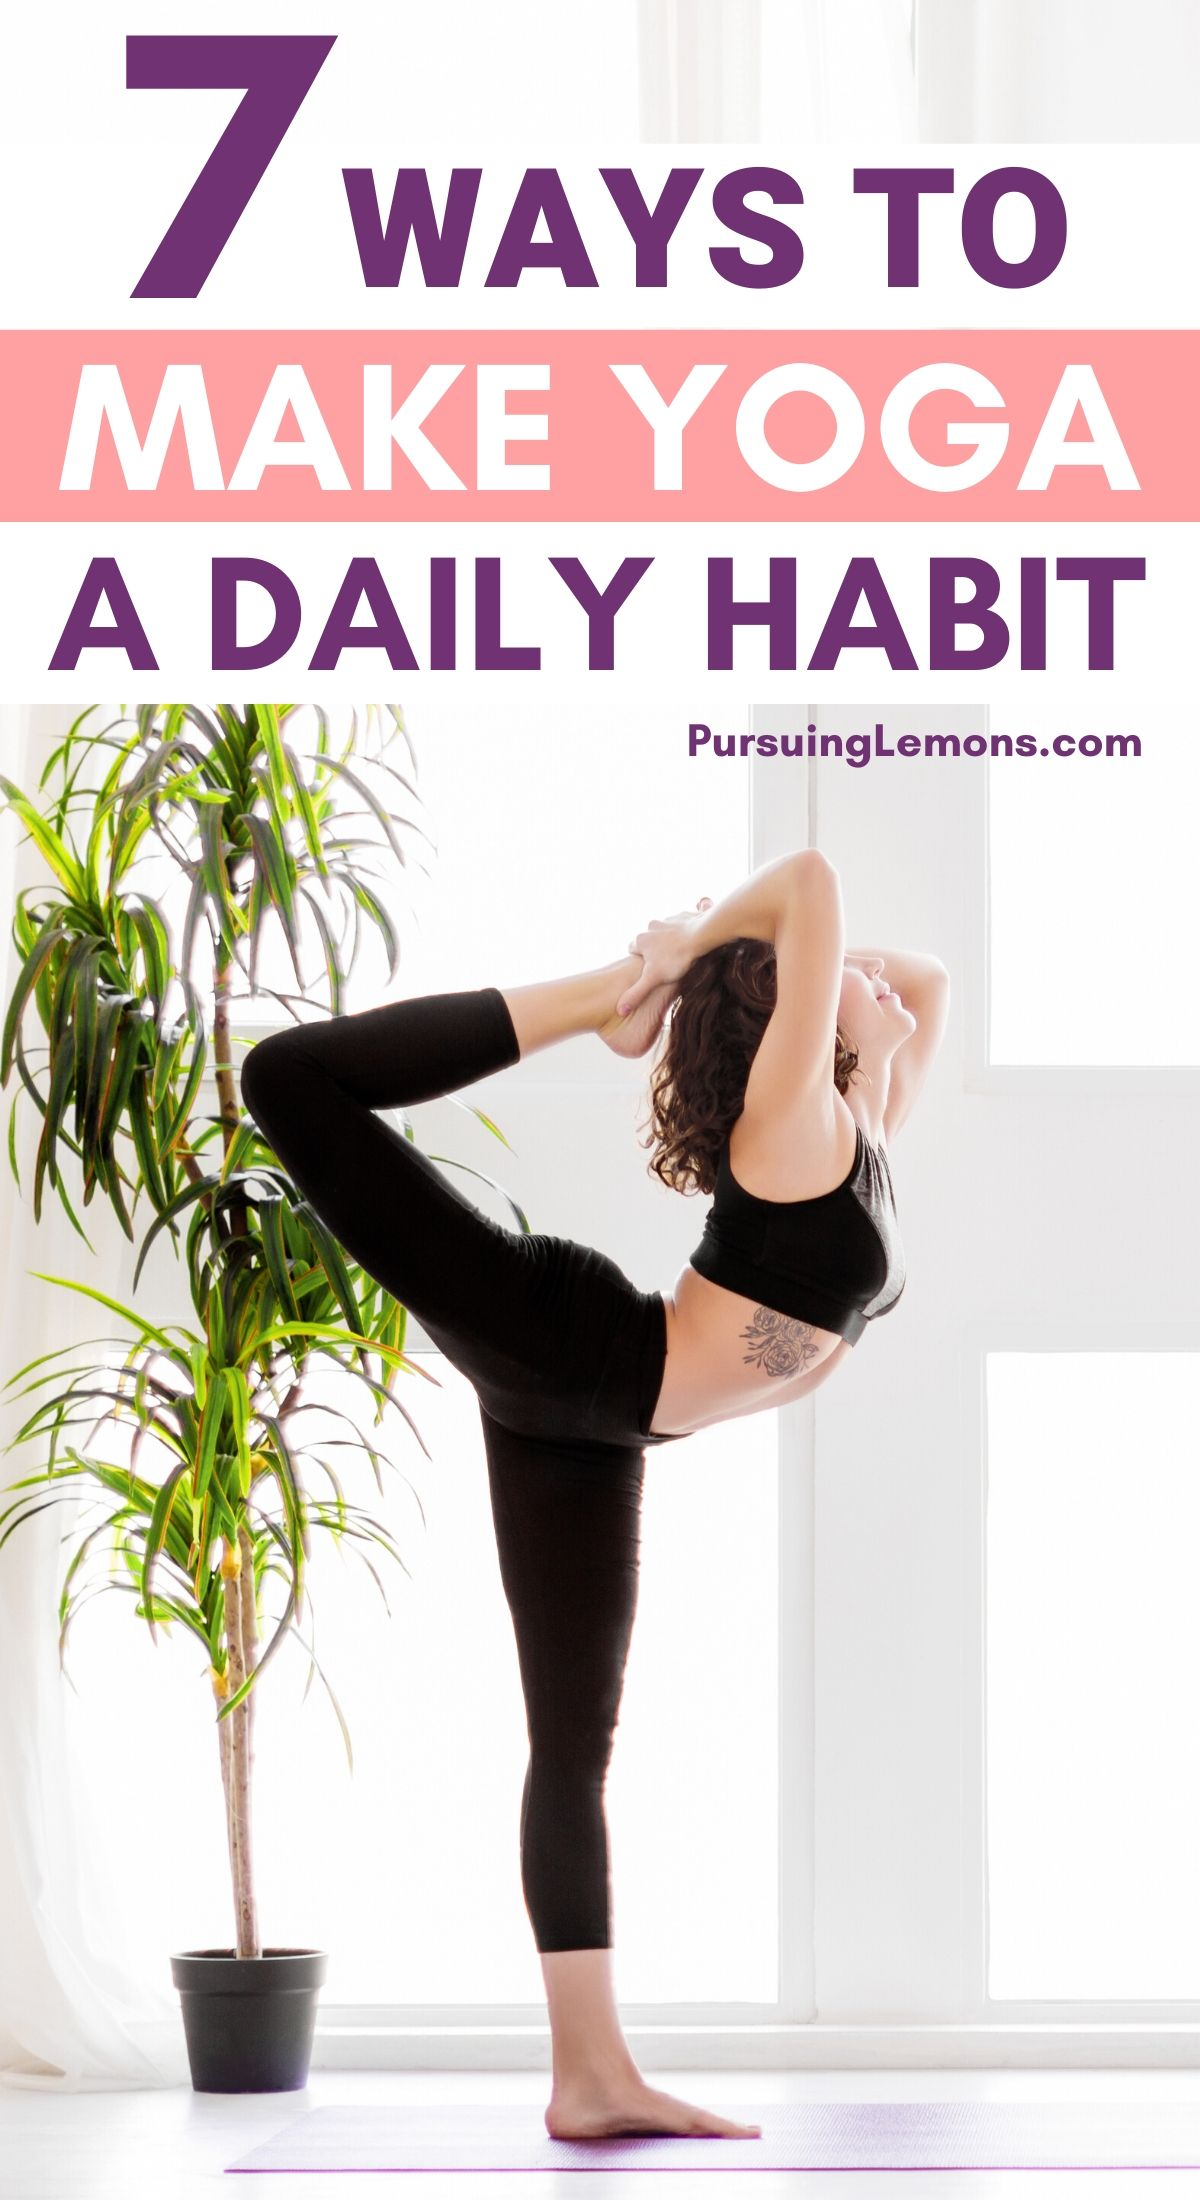 7 Ways To Make Yoga A Daily Habit | Want to build a daily yoga habit? Here are 7 tips that really work. #habits #yogahabit #yogaforbeginners #yoga #yogapractice